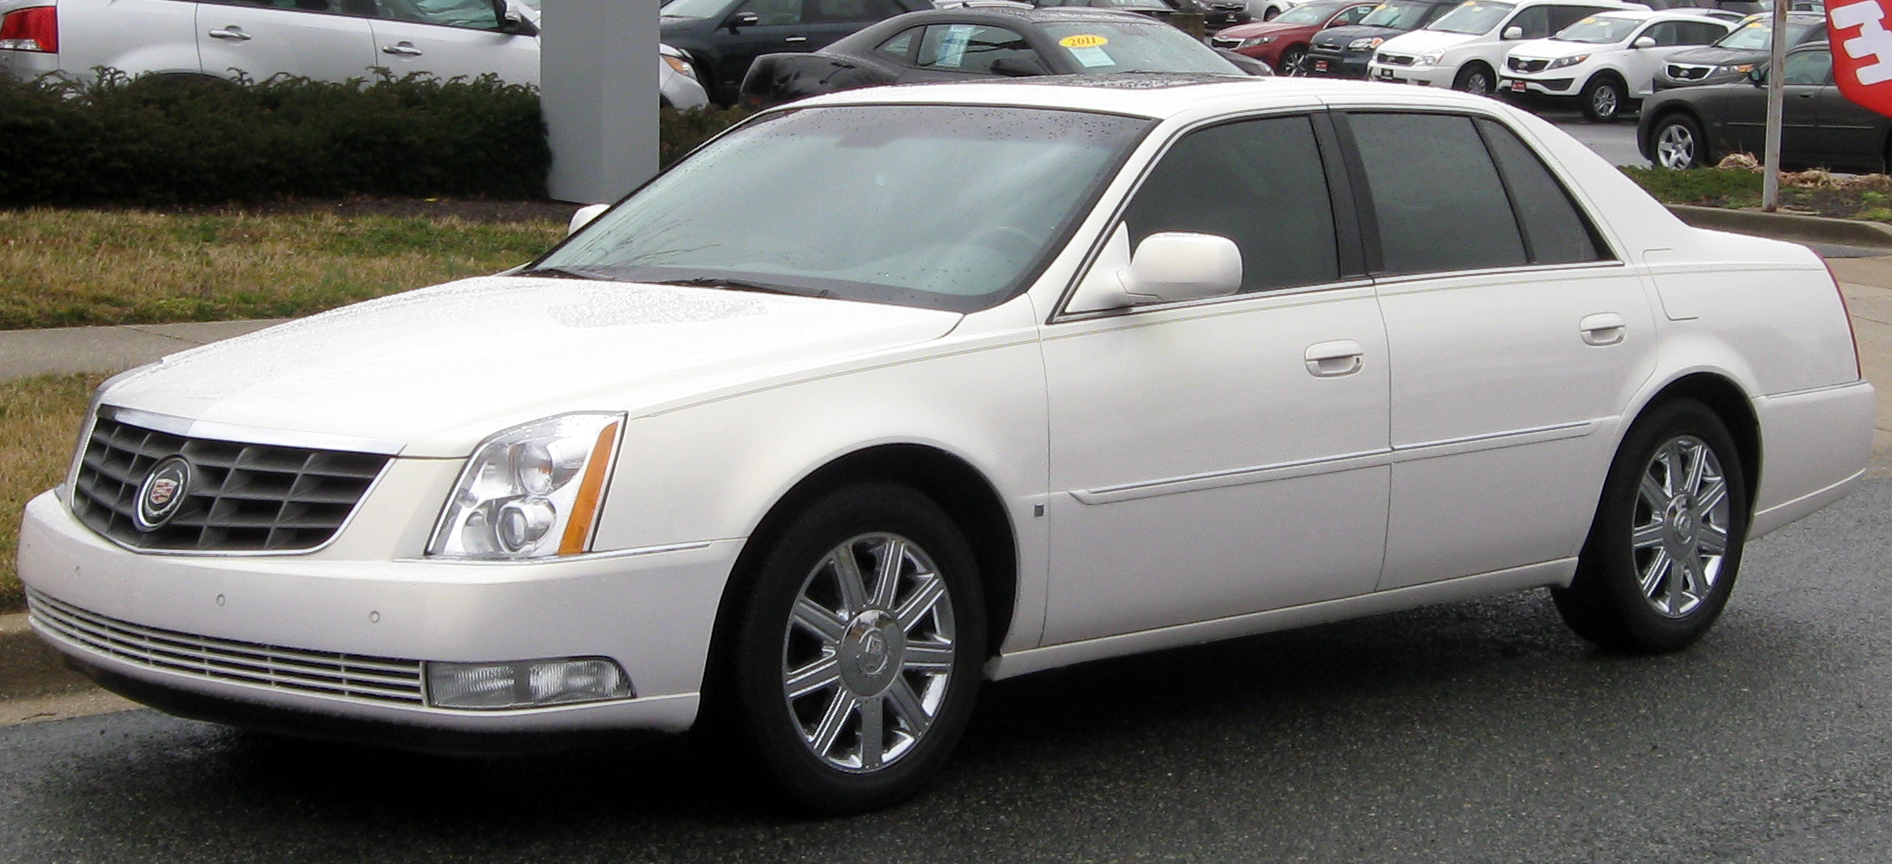 What Are Dts >> Cadillac Dts Wikipedia